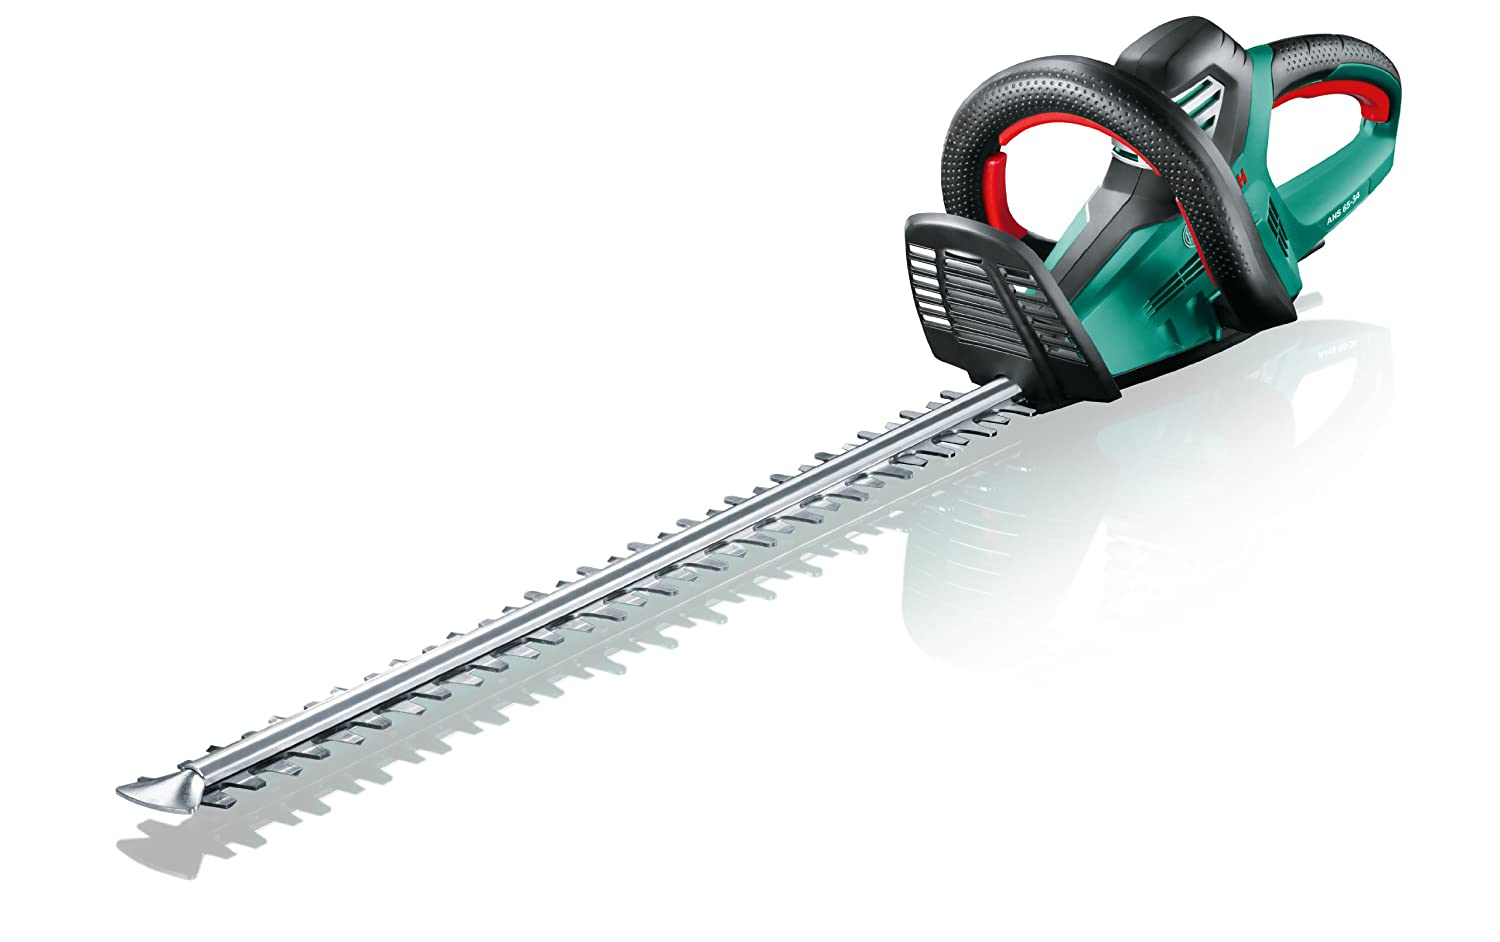 Bosch AHS 60-26 Electric Hedge Cutter, 600 mm Blade Length, 26 mm Tooth Opening 0600847H70